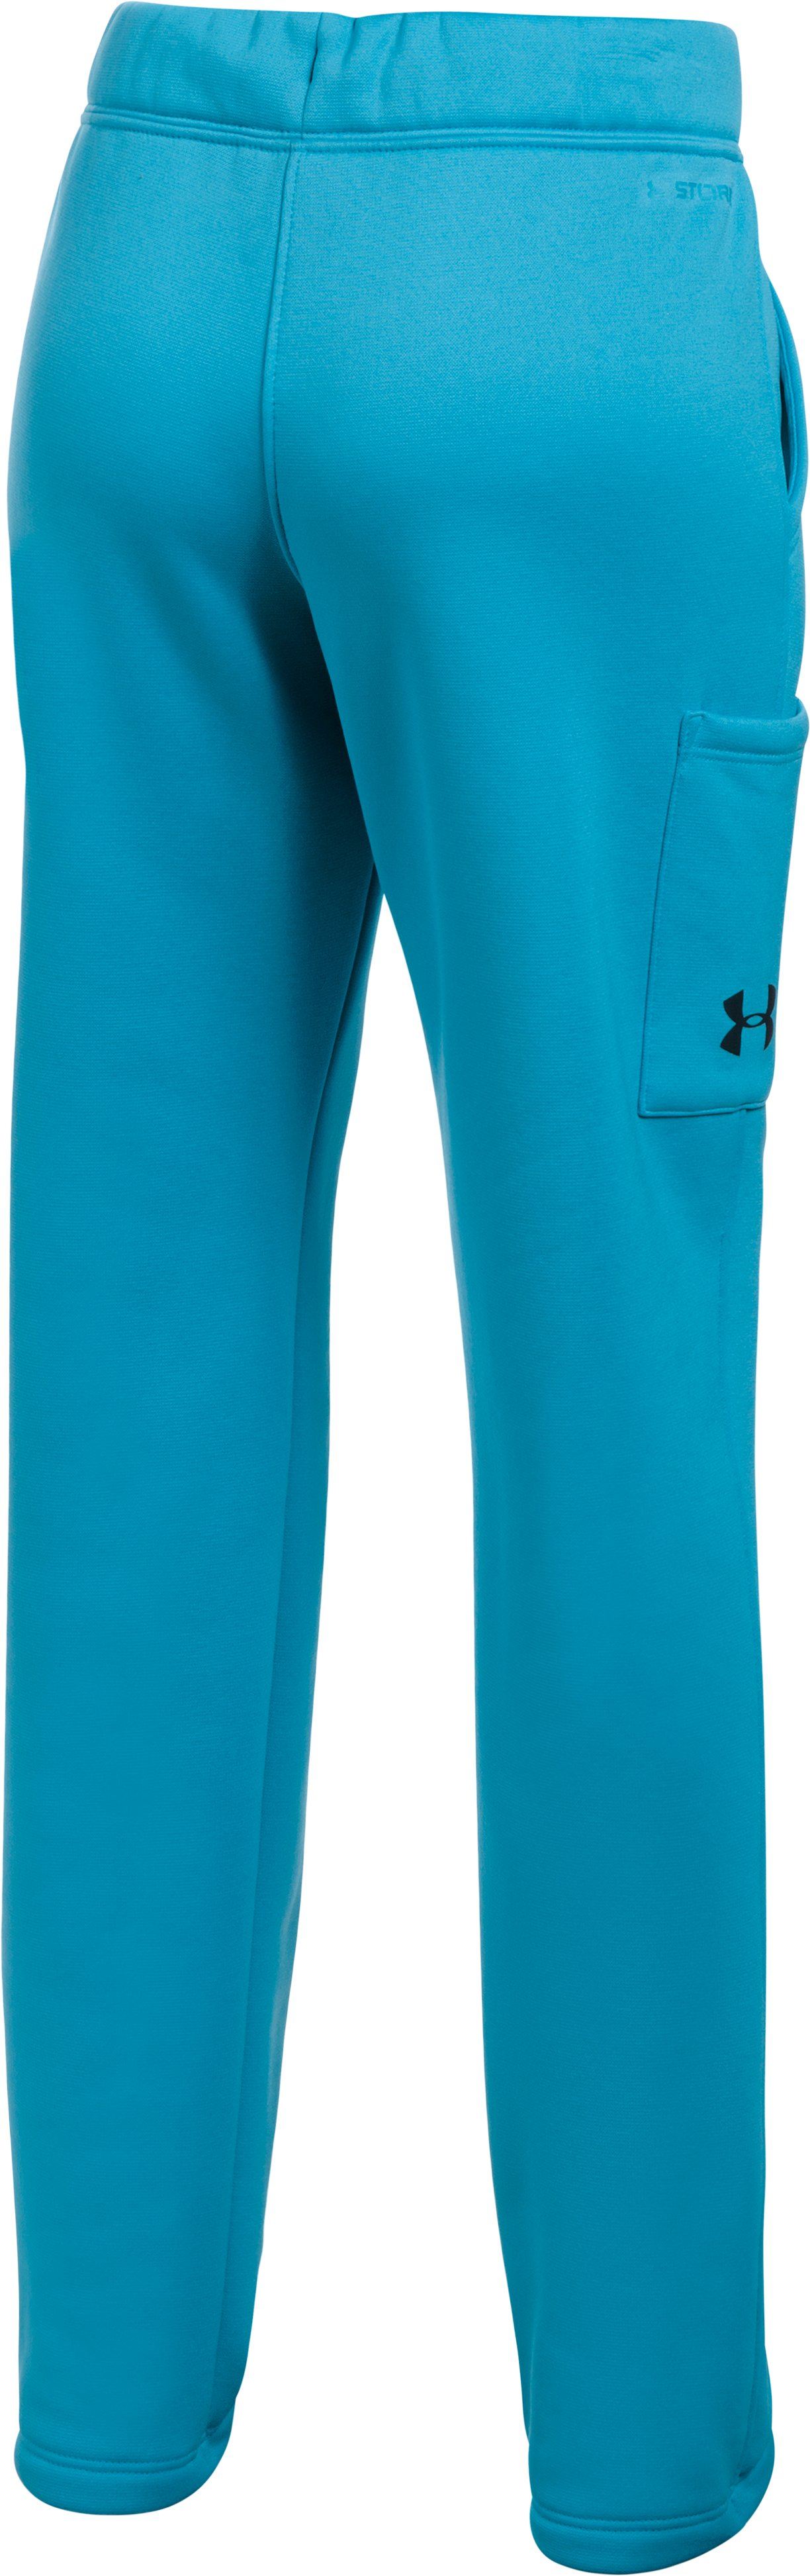 Girls' Armour Fleece® Pants, BLUE SHIFT, undefined